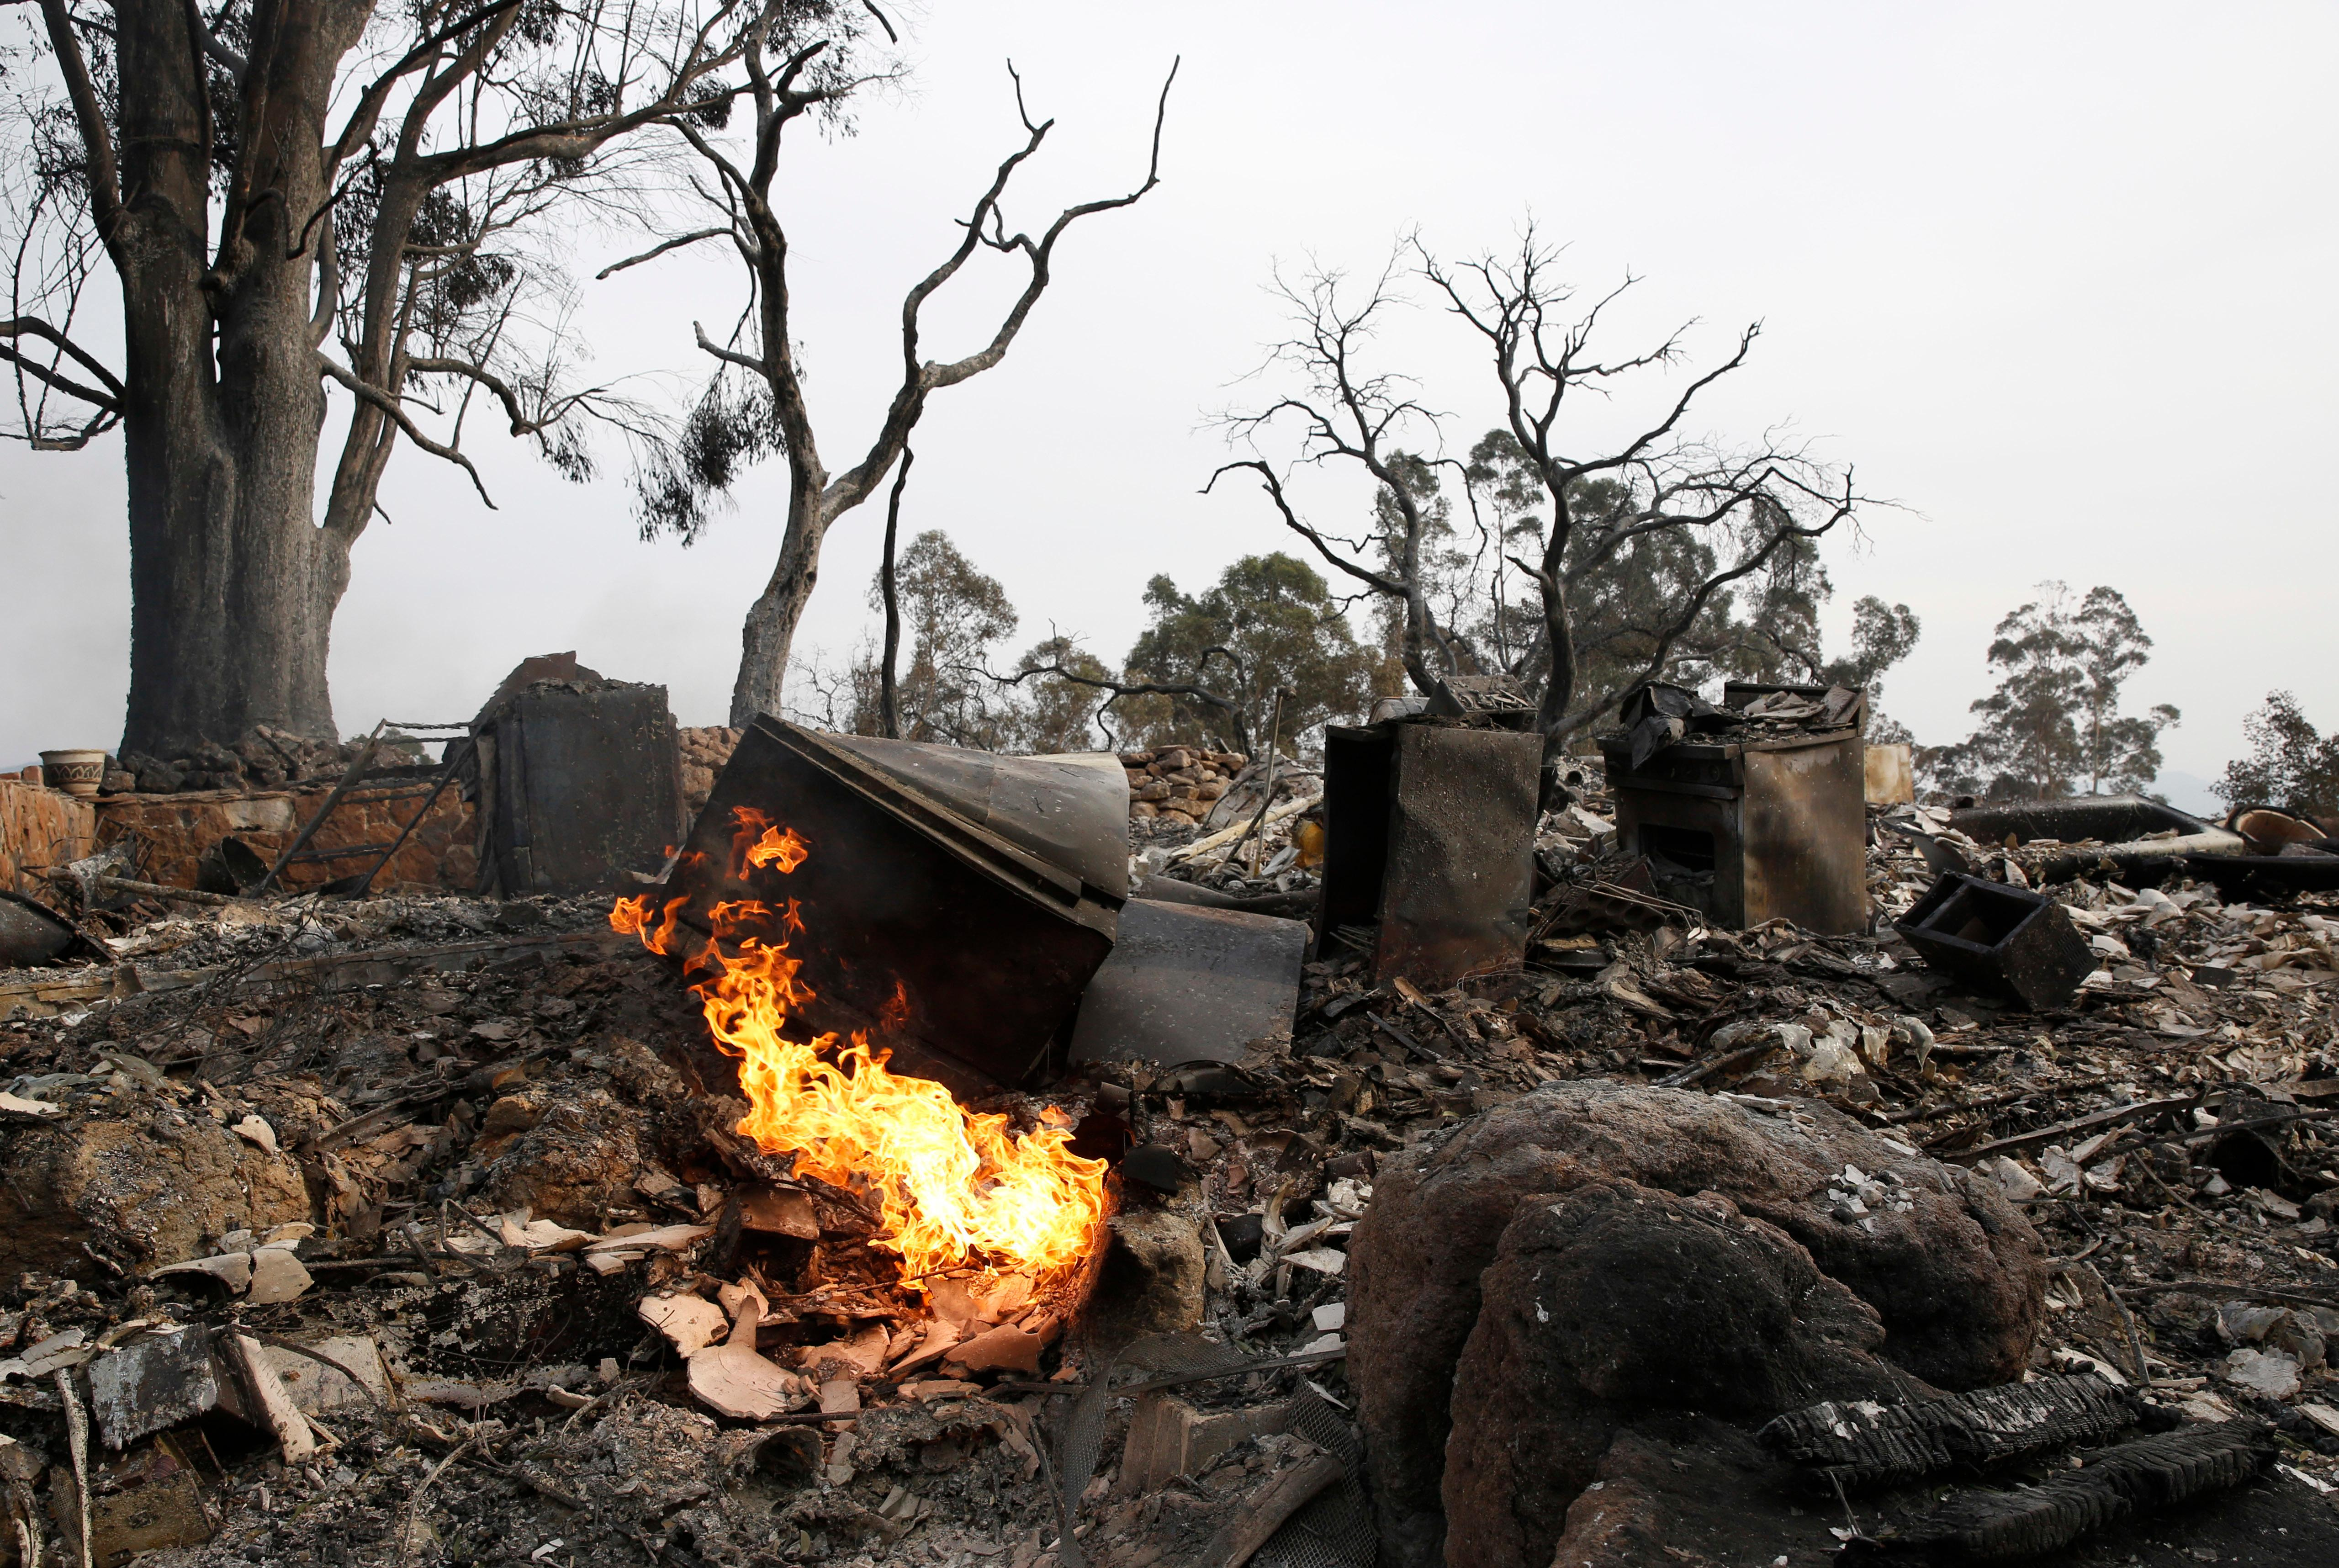 Flames fed by a gas line, burns in the debris of a fire ravaged home, Tuesday, Oct. 10, 2017, in Napa, Calif. Wildfires whipped by powerful winds swept through the California wine country sending thousands fleeing as flames rages unchecked through high-end resorts, grocery stores and tree-lined neighborhoods.(AP Photo/Rich Pedroncelli)